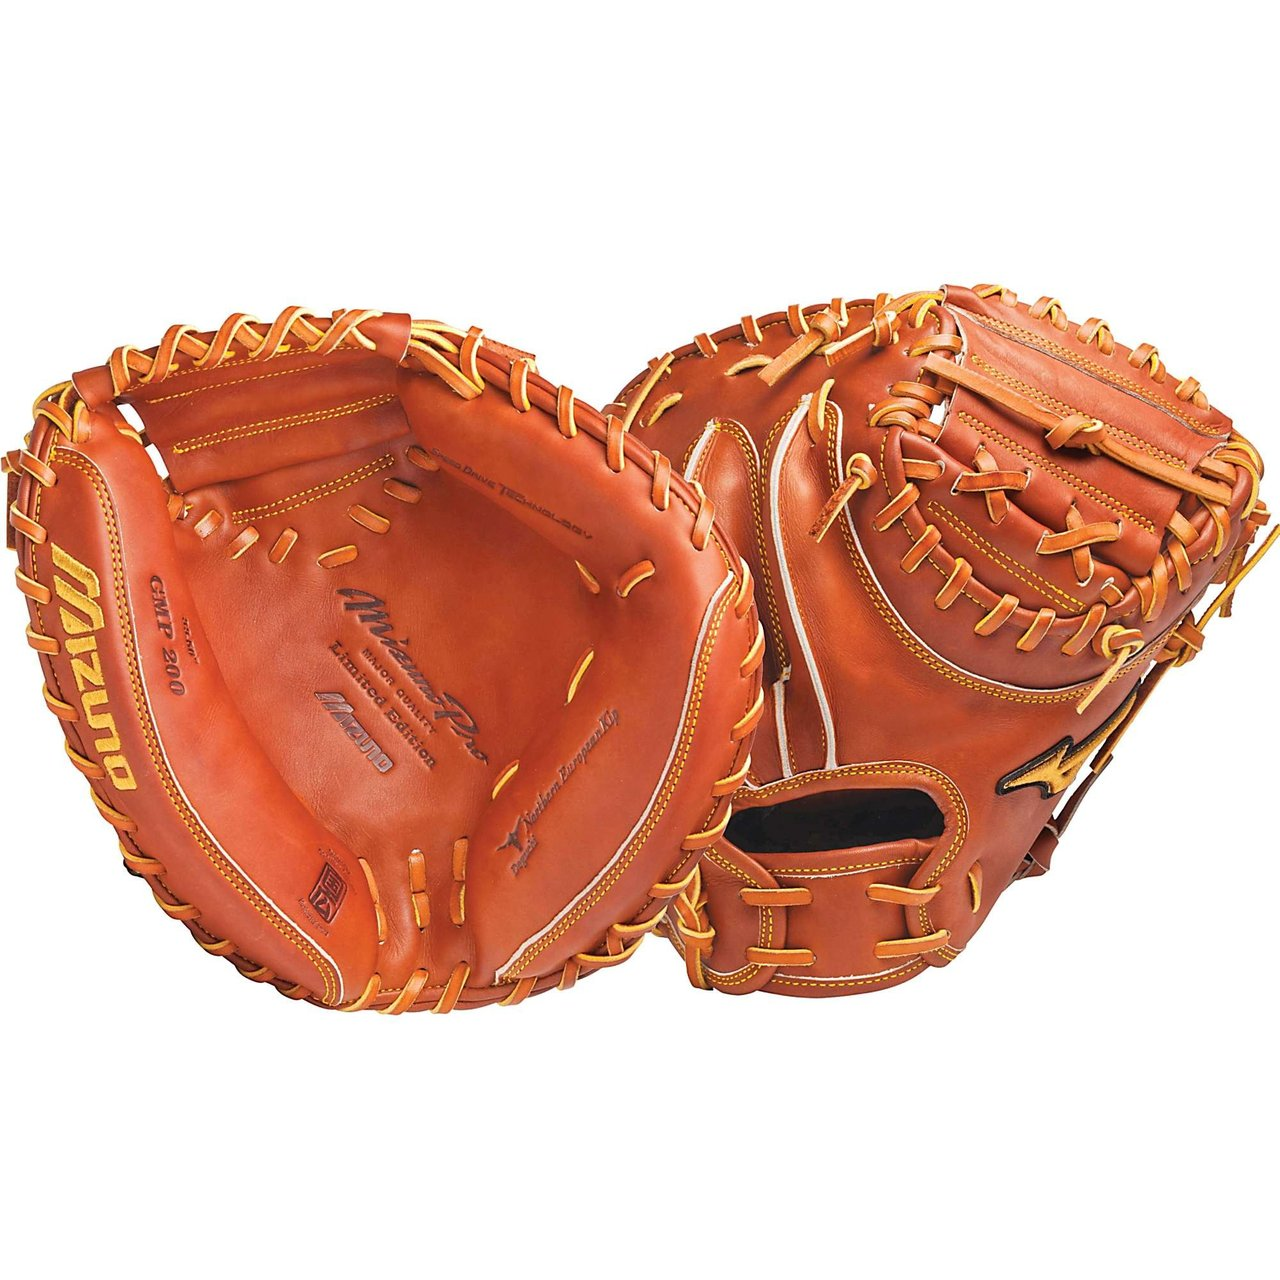 Mizuno Pro Limited catchers mitt. The best catchers mitt Mizuno makes, used by major league catchers using the best leather and materials.